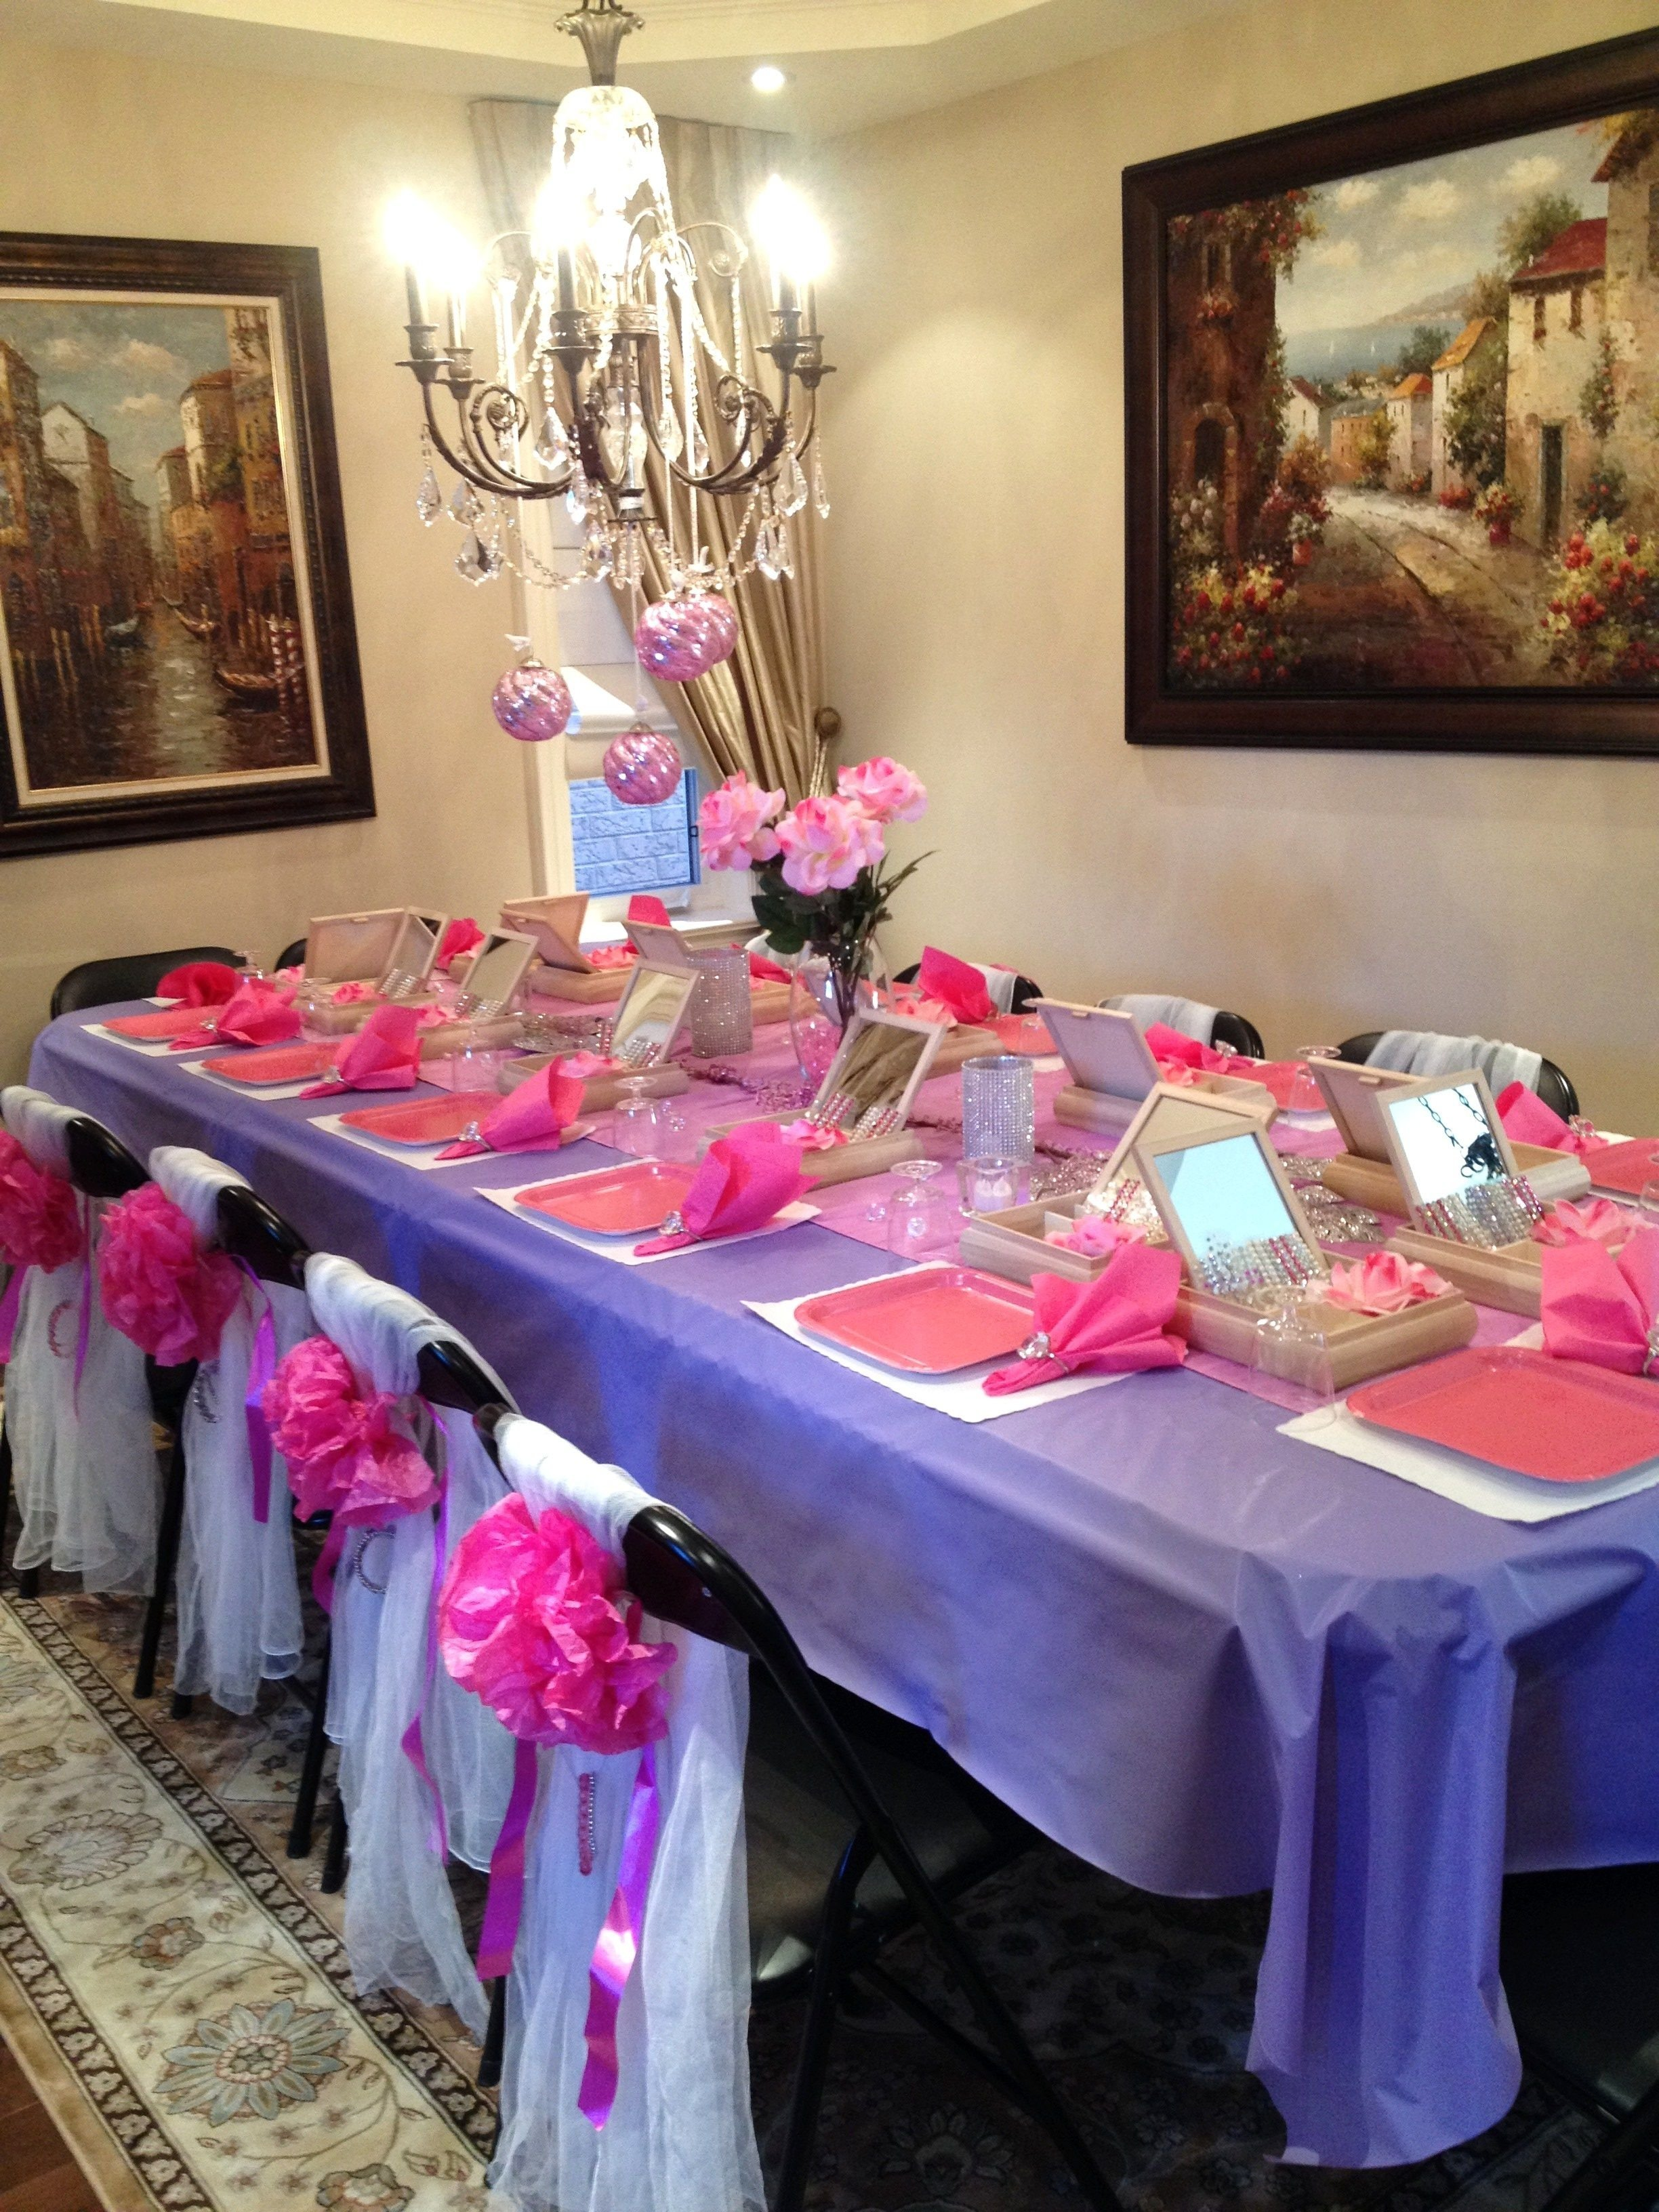 10 Unique 5 Year Old Birthday Party Ideas this momma went all out she created a beautiful table display to go 2 2020